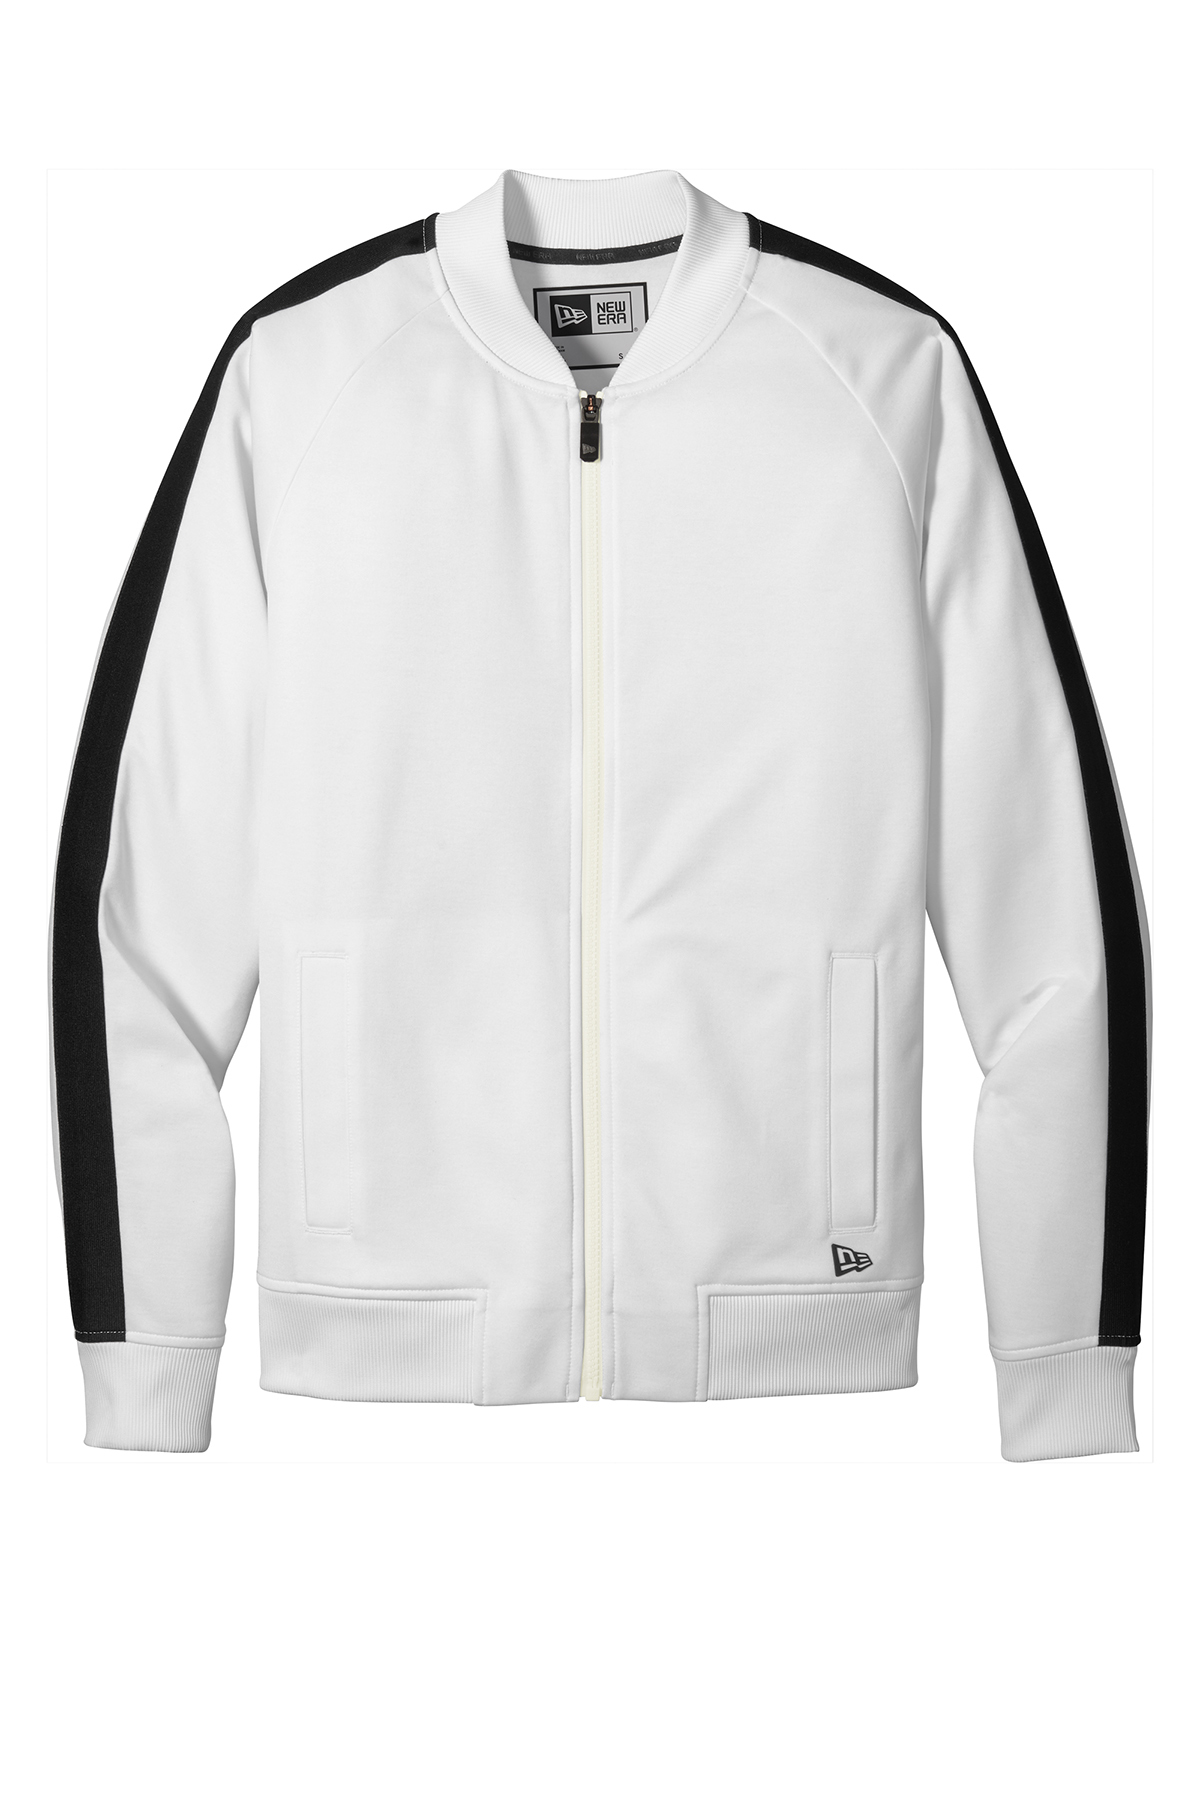 New Era ® NEA650 - Mens Track Jacket